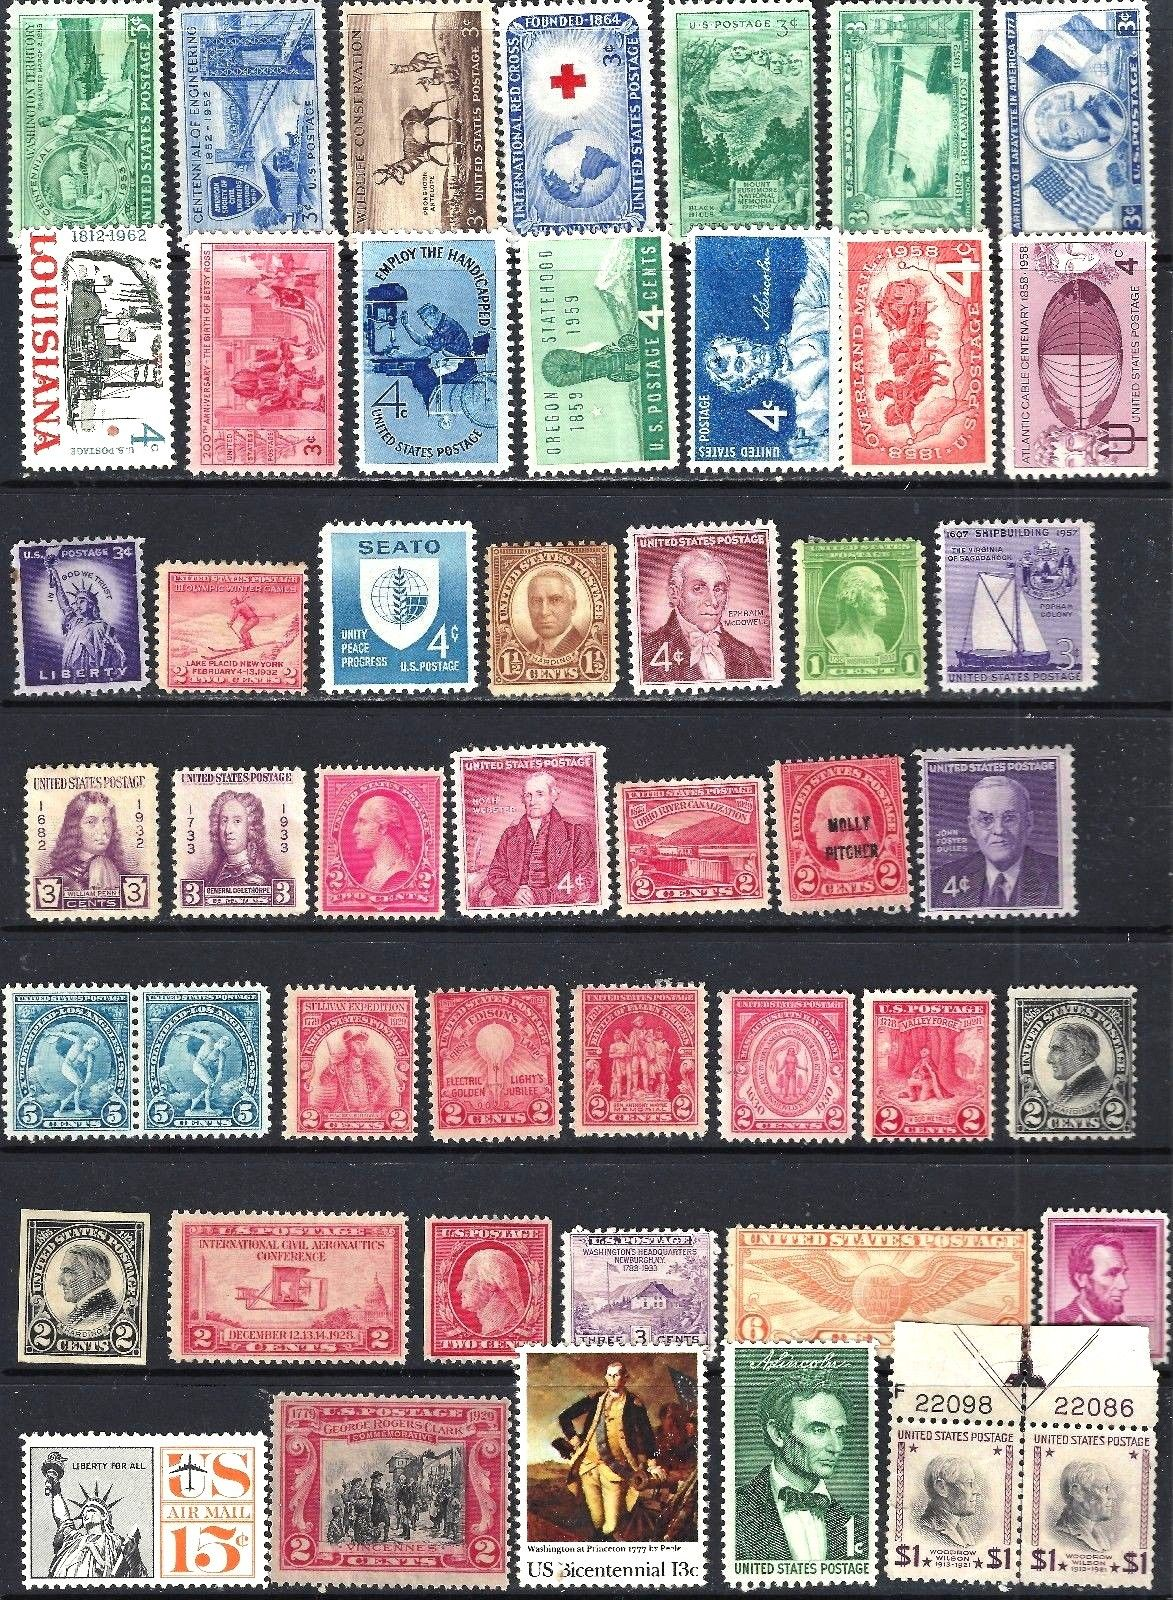 NICE SELECTION OF CLASSIC US MINT STAMPS MISC FINE HipStamp